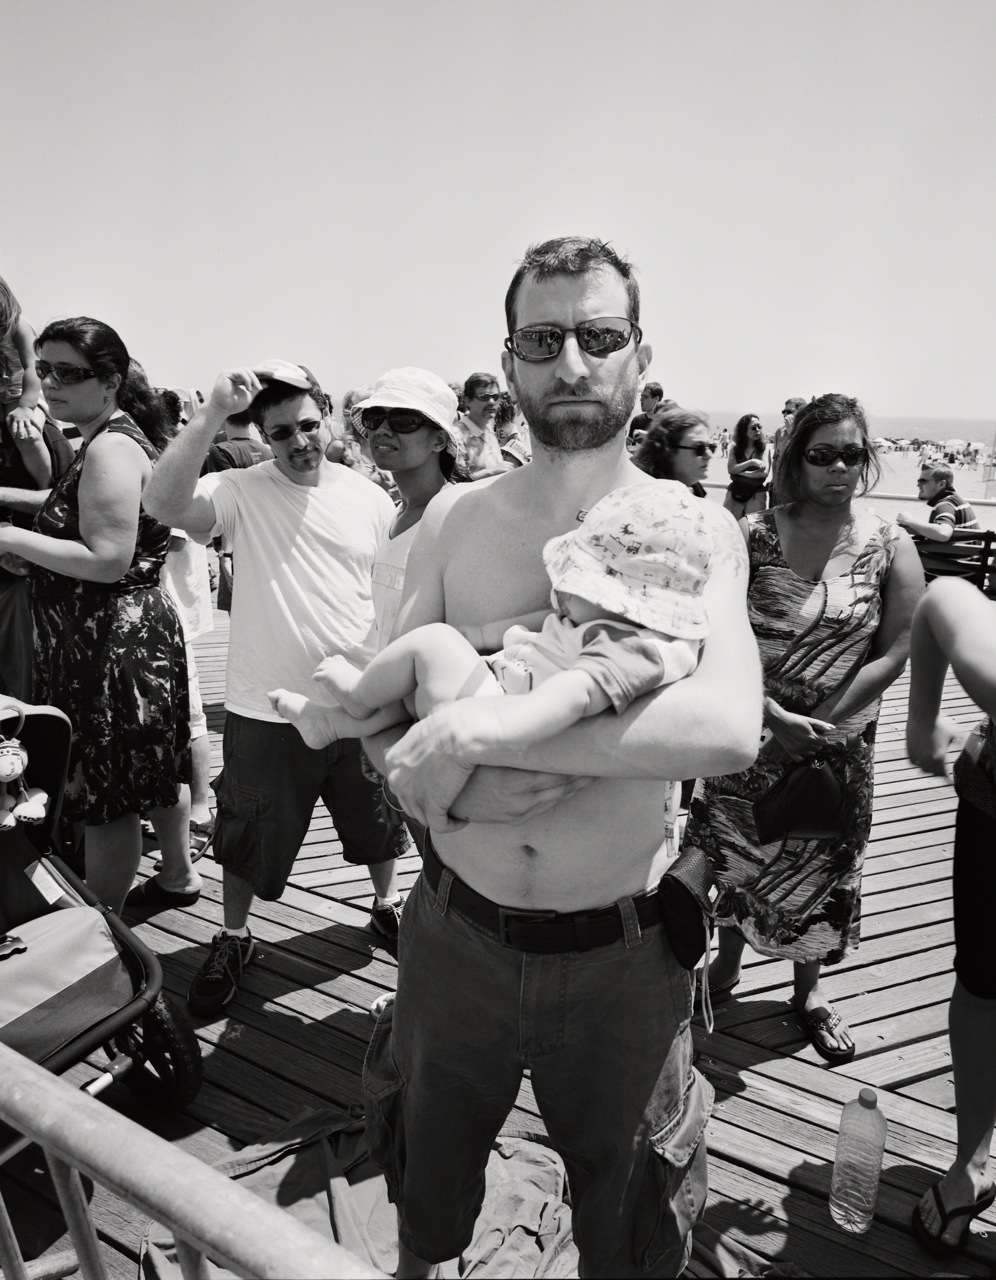 Peter and his son from the 2008 Mermaid Parade © Matt Hill